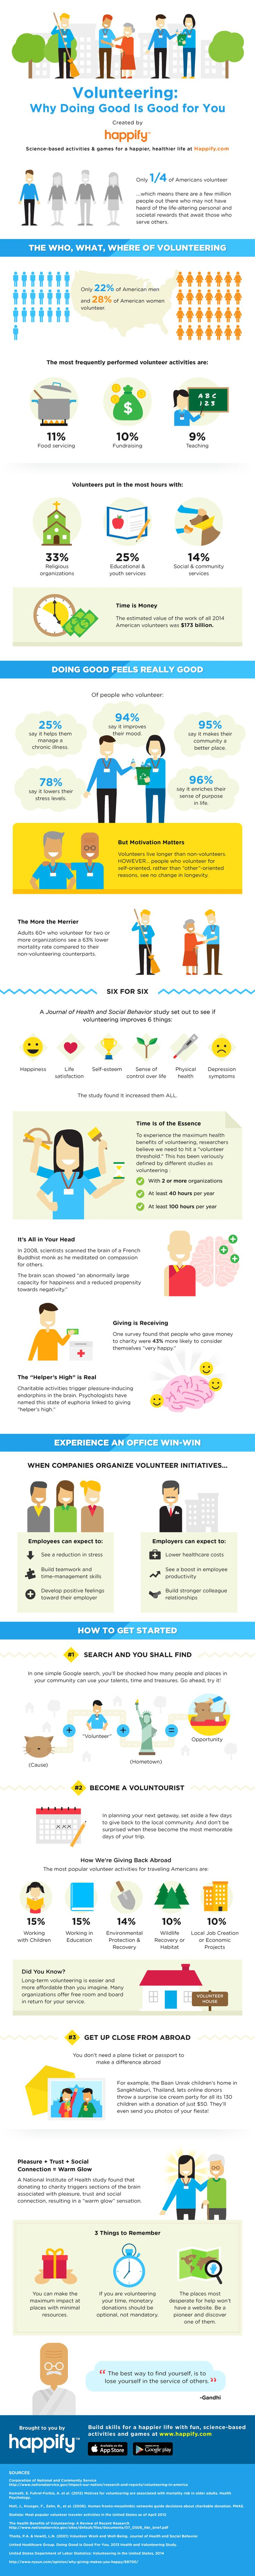 INFOGRAPHIC: Why People Who Volunteer Are Happier and Healthier